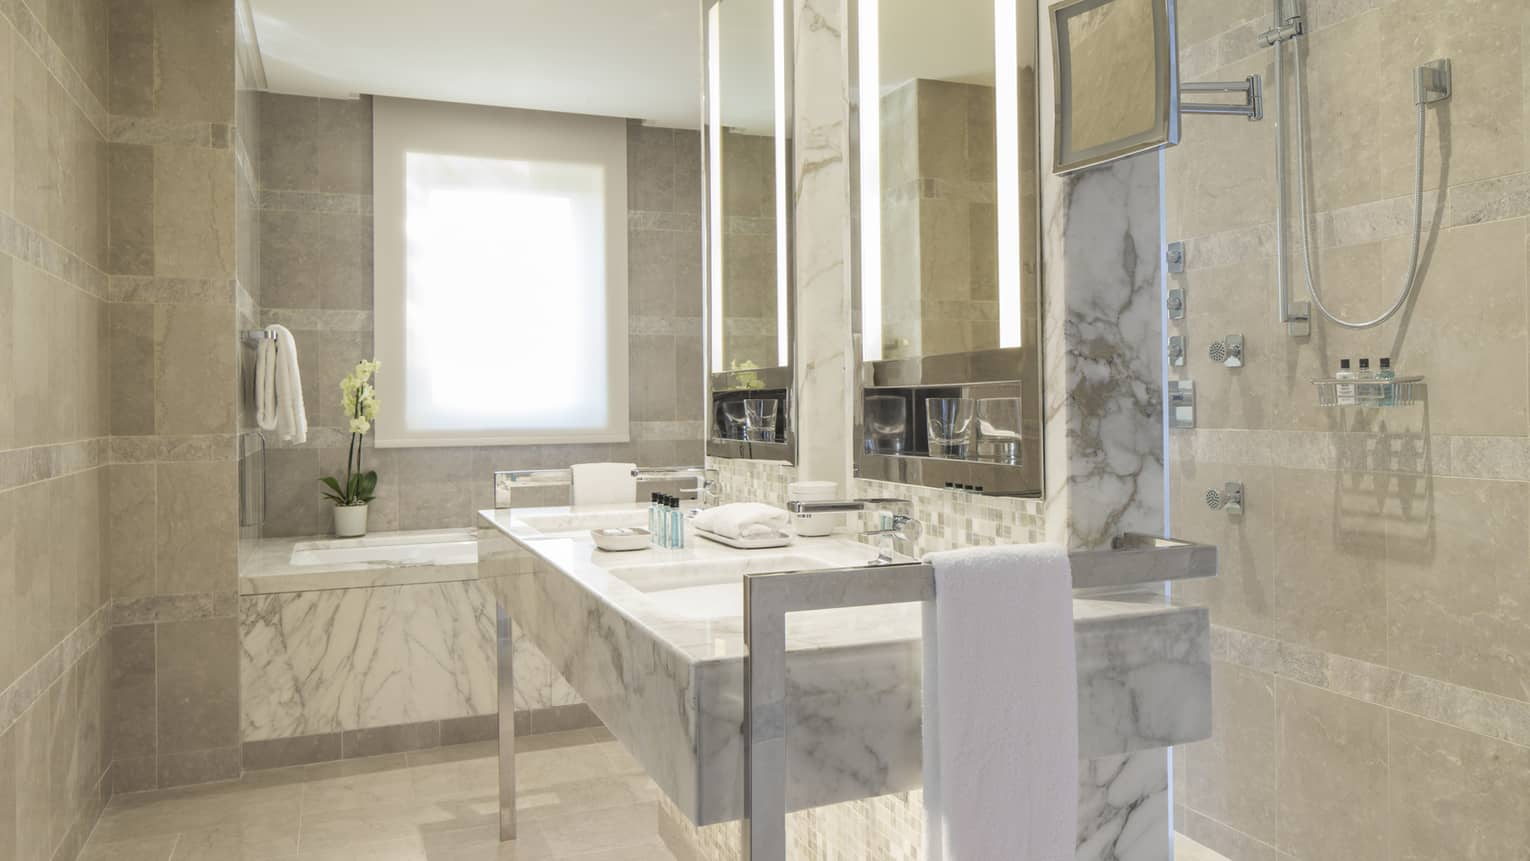 Executive Suite full white and grey marble bathroom, vanity with double sink, tub